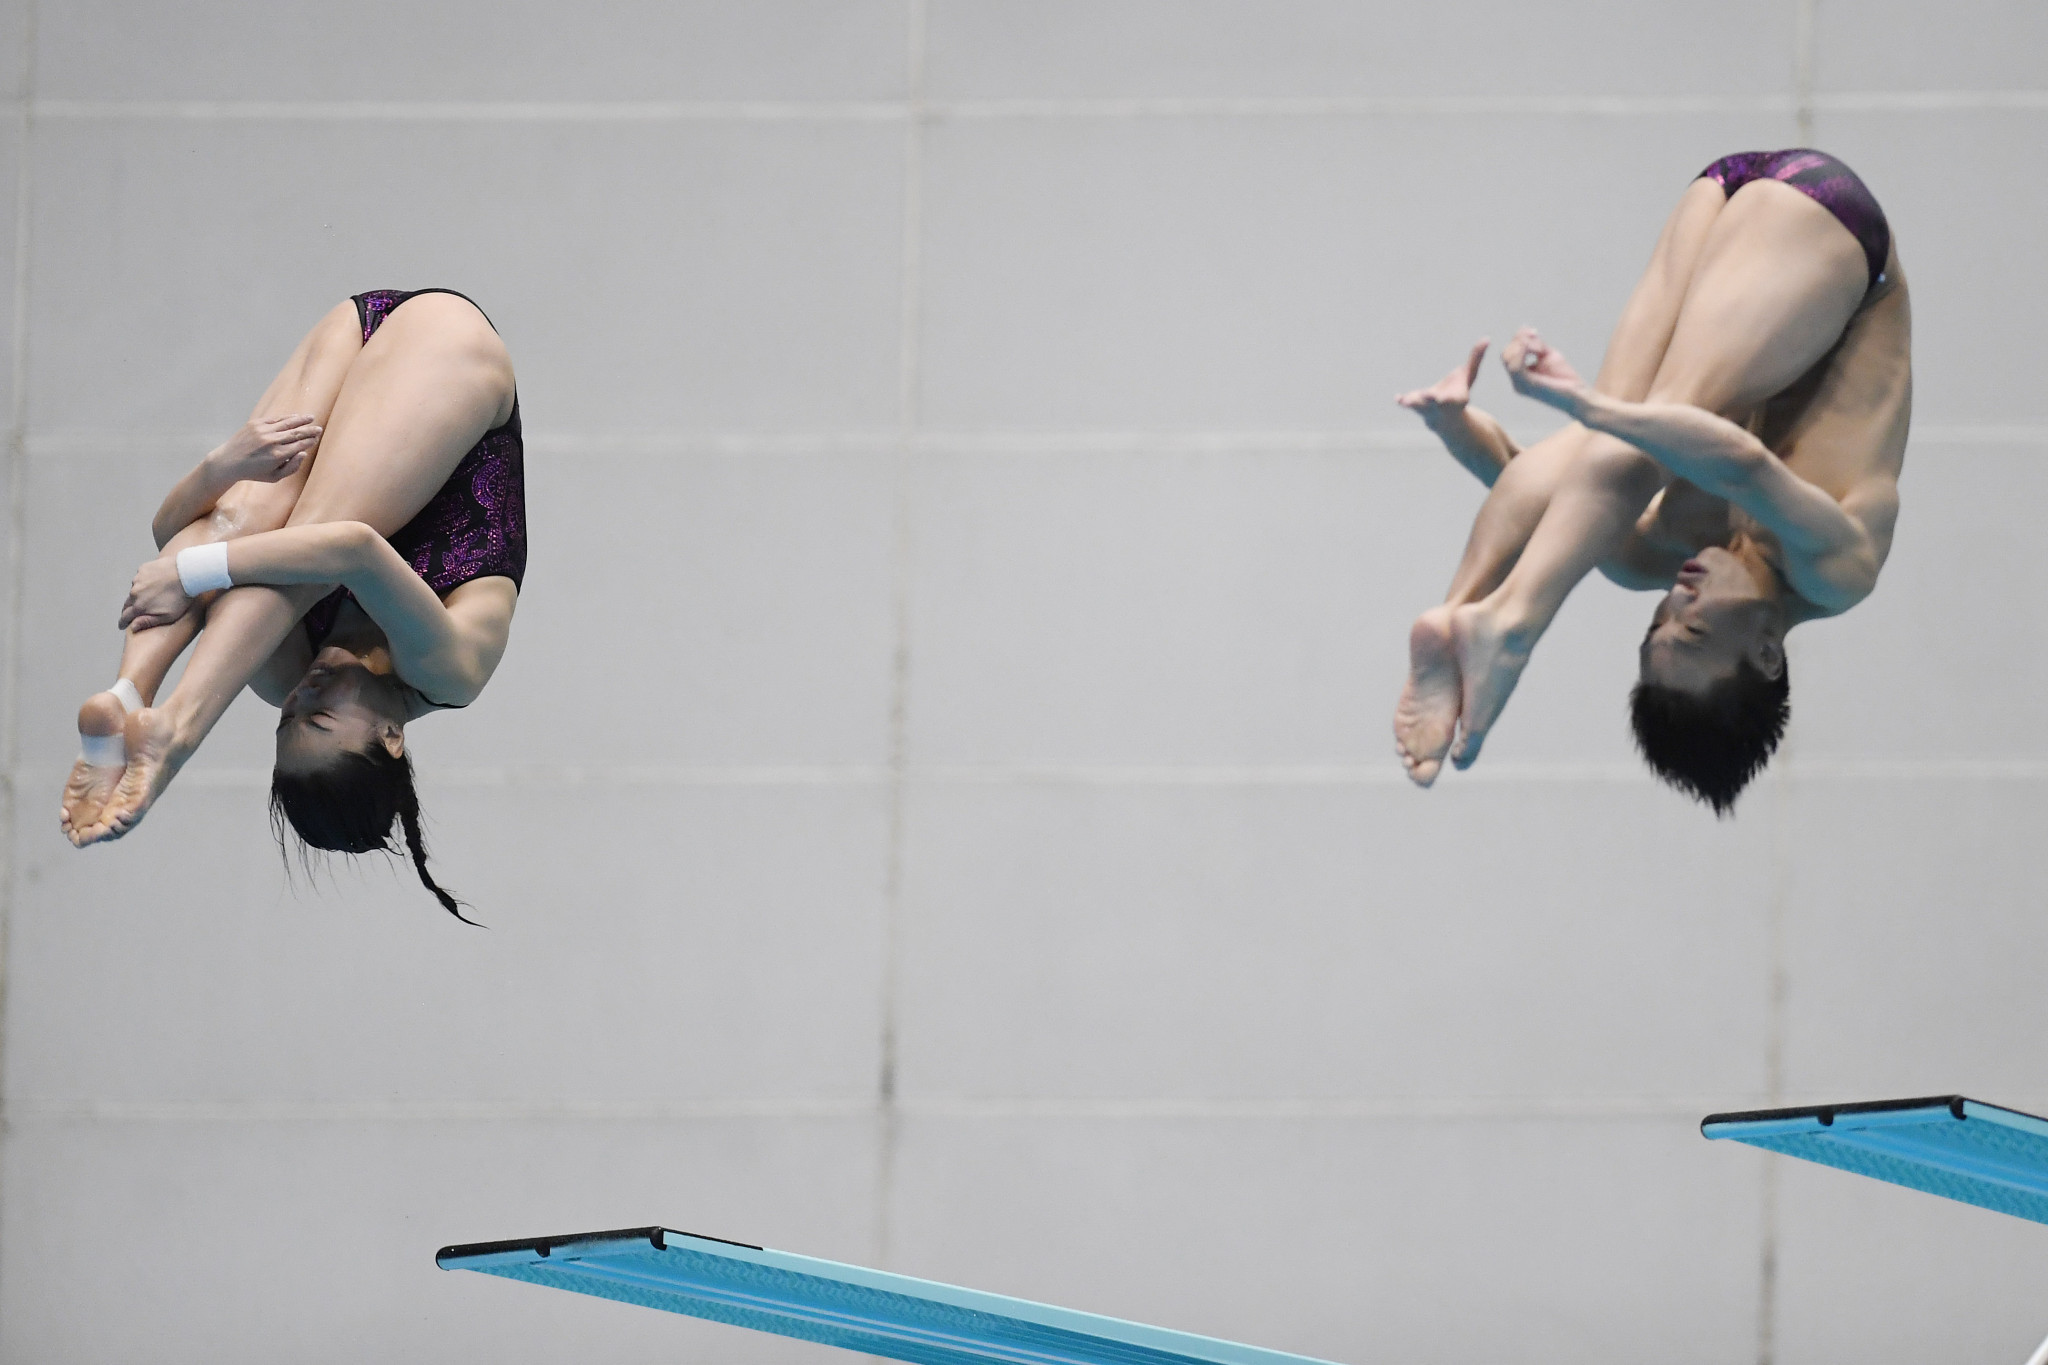 FINA has announced dates and venues for the 2019 Diving World Series ©Getty Images